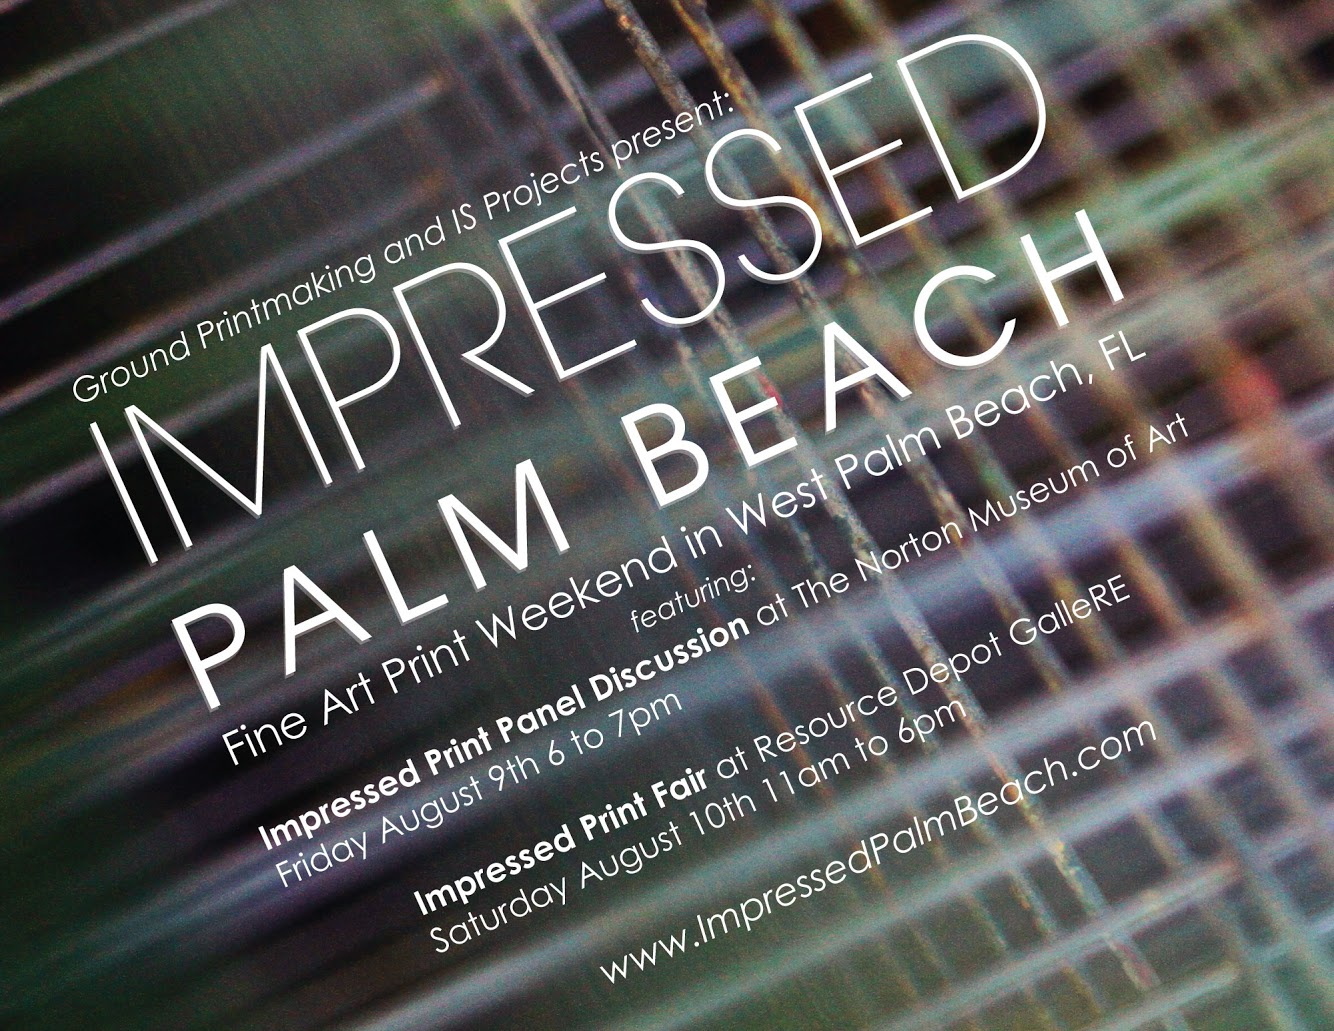 Impressed Palm Beach Fine Art Print Panel & Fair - Friday, August 9 - Saturday, August 10Visit Impressed Palm Beach for details